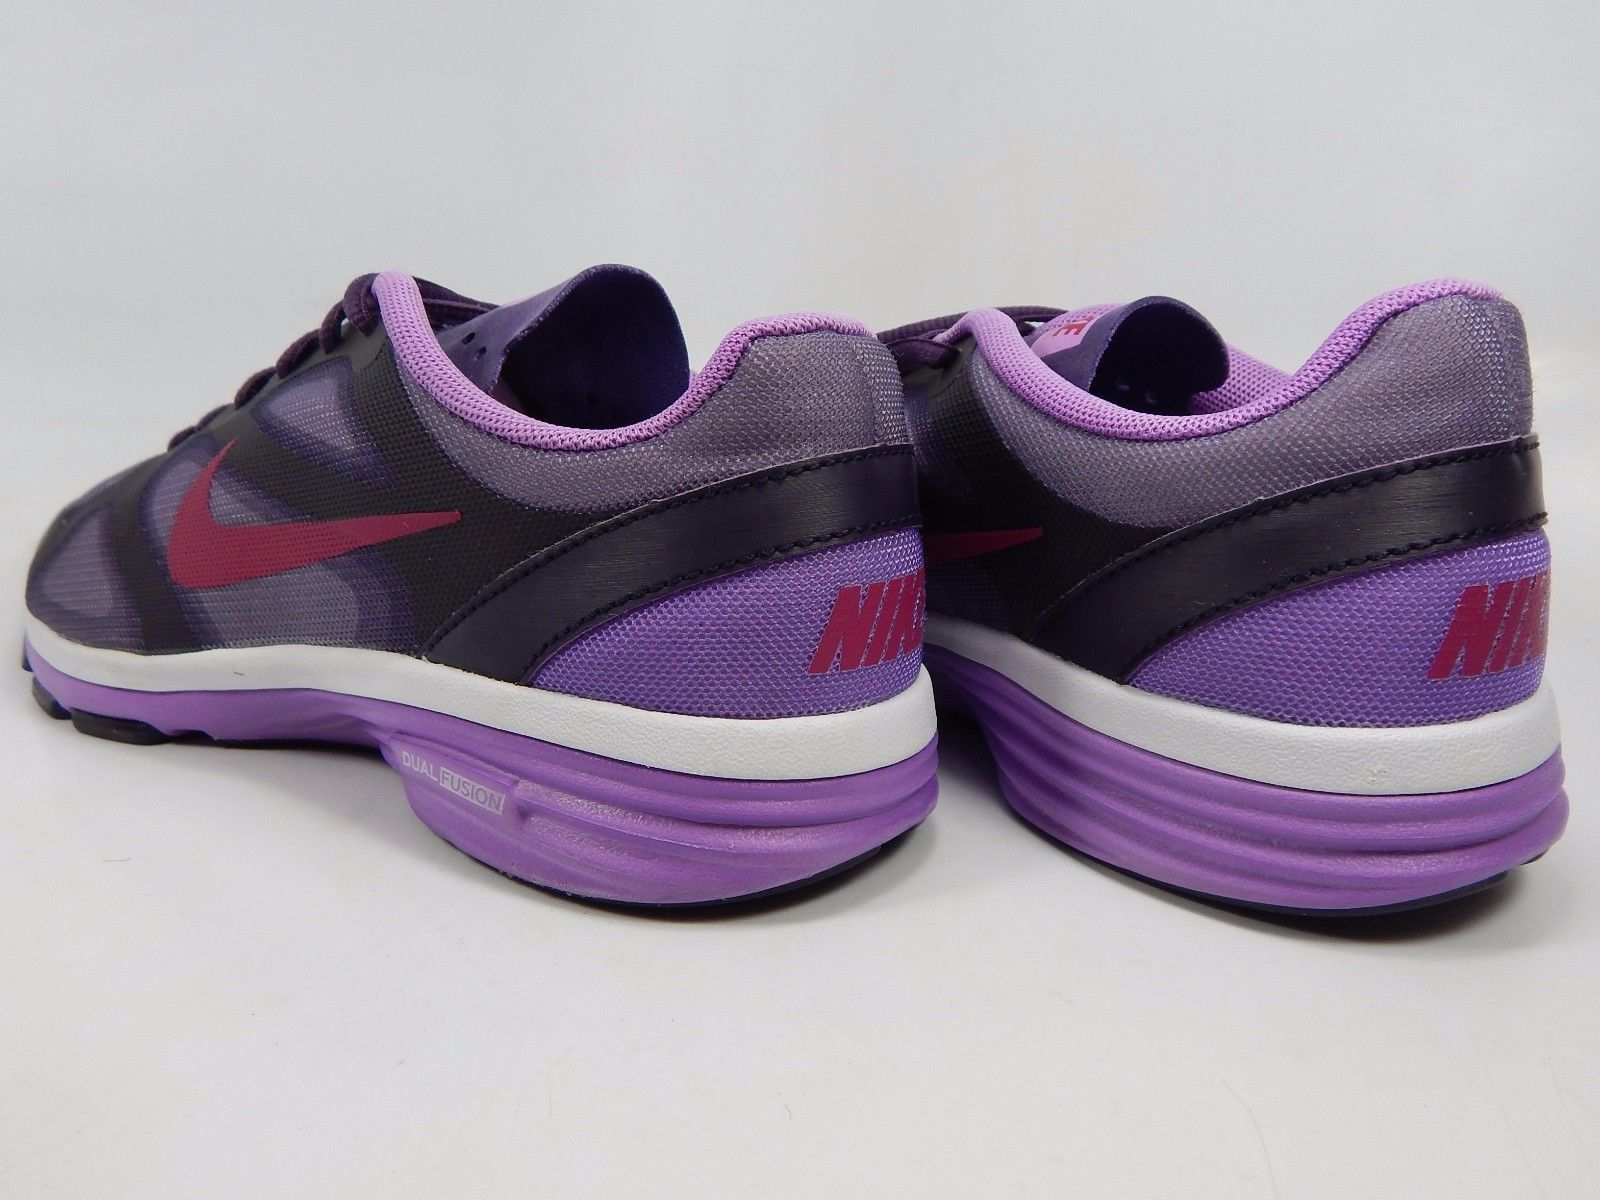 Nike Dual Fusion Run TR Women's Running Shoes Size US 8 M (B) EU 39 443837-500